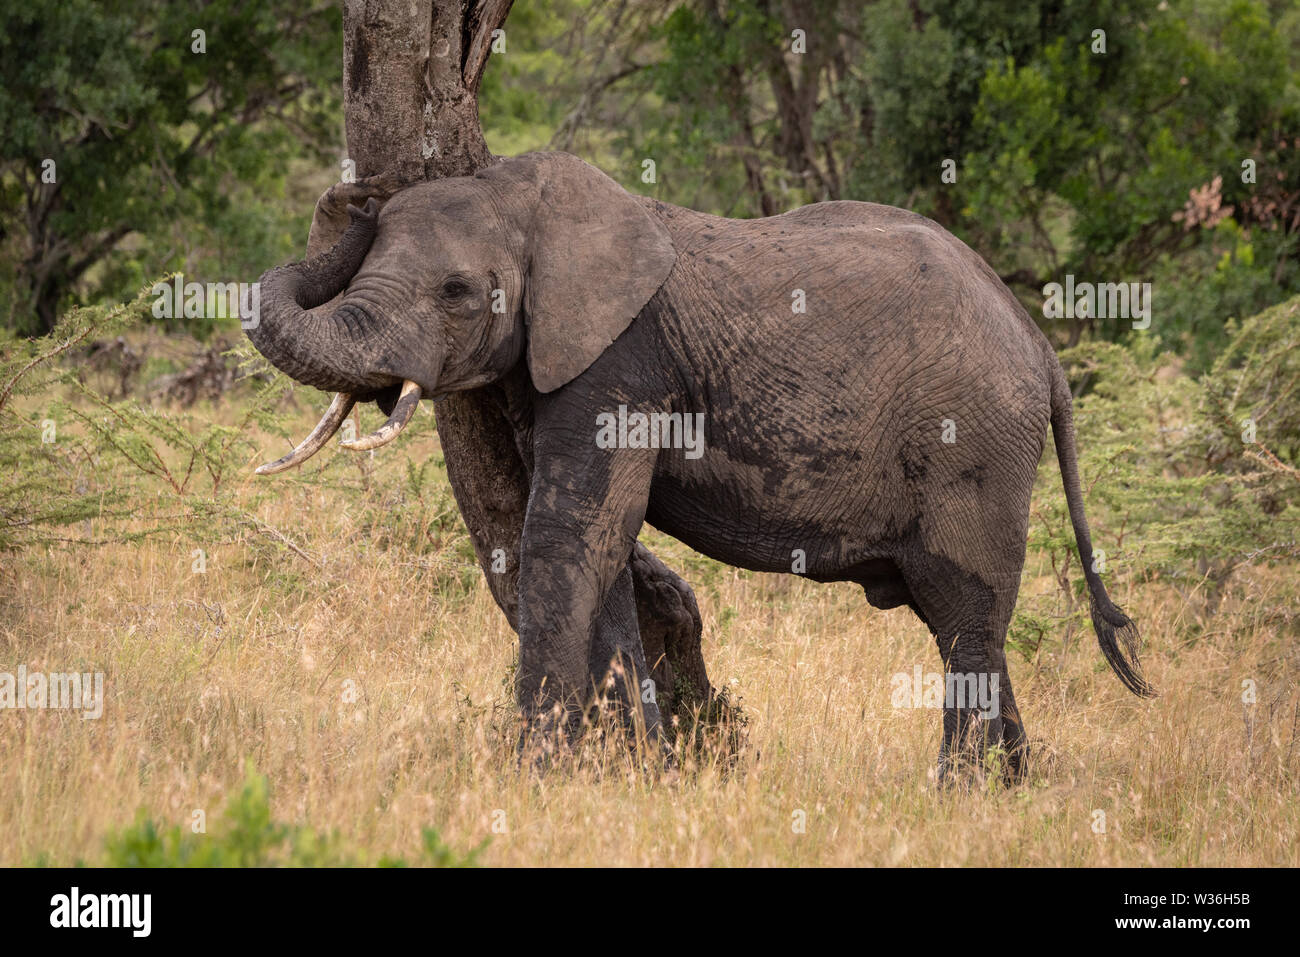 African elephant rubbing itself against twisted tree - Stock Image